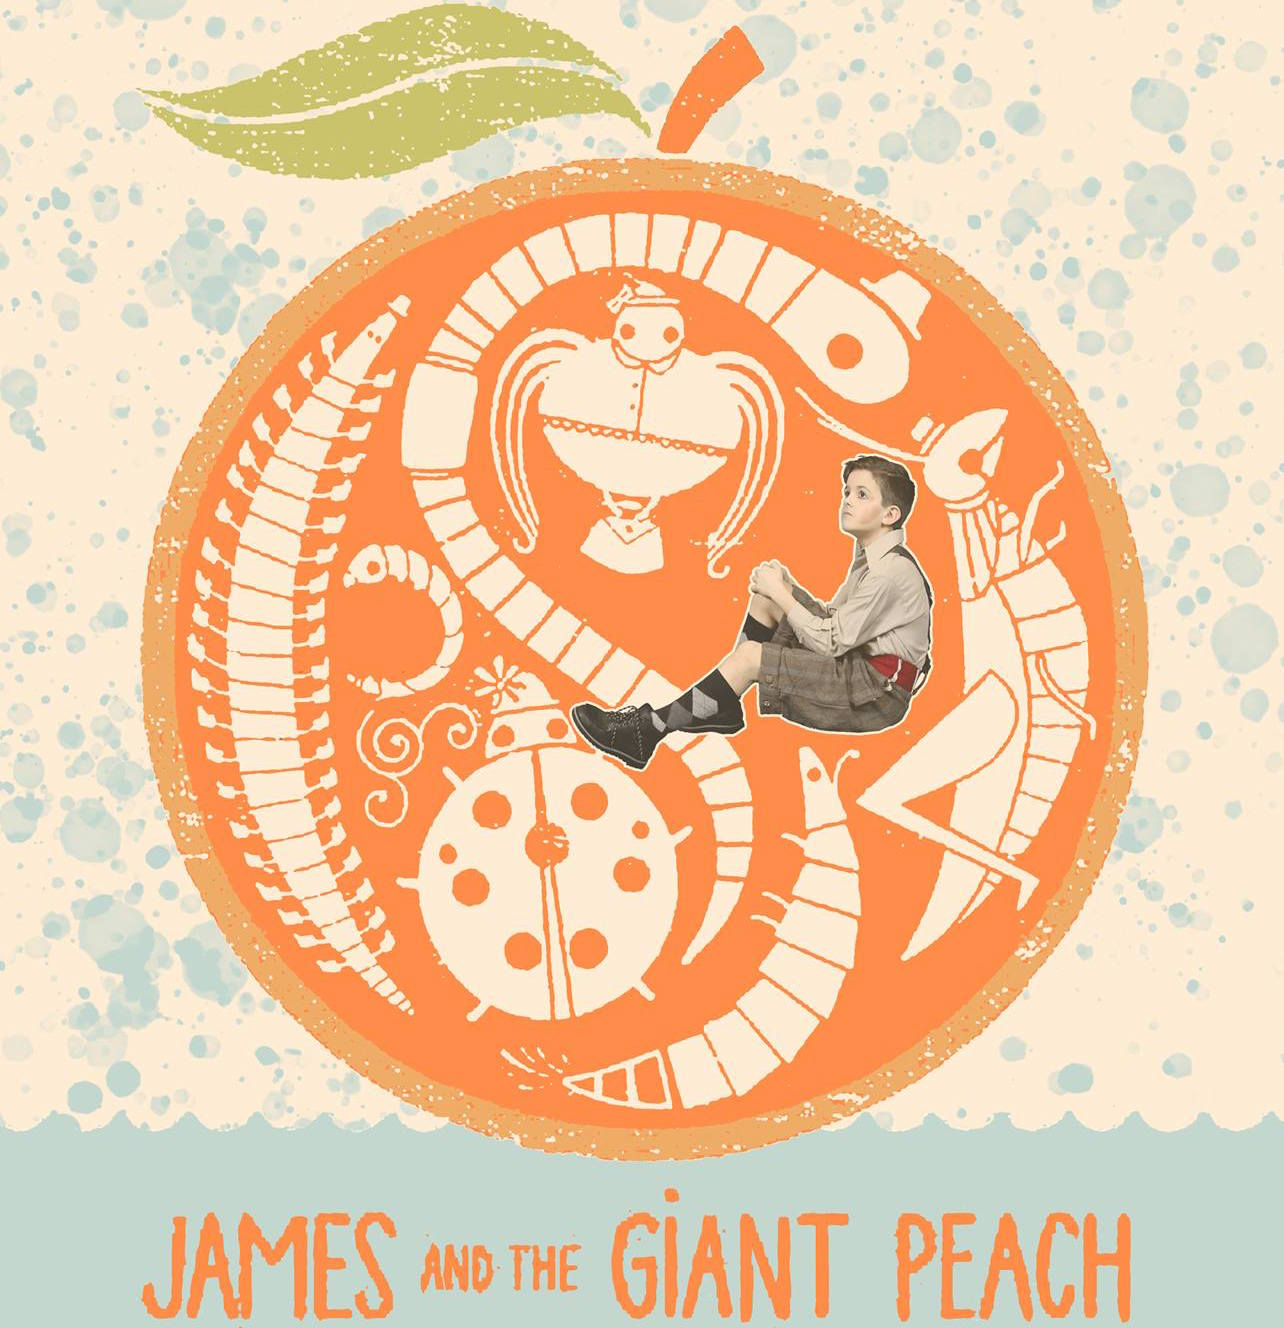 Advance Discount Tickets To James And The Giant Peach